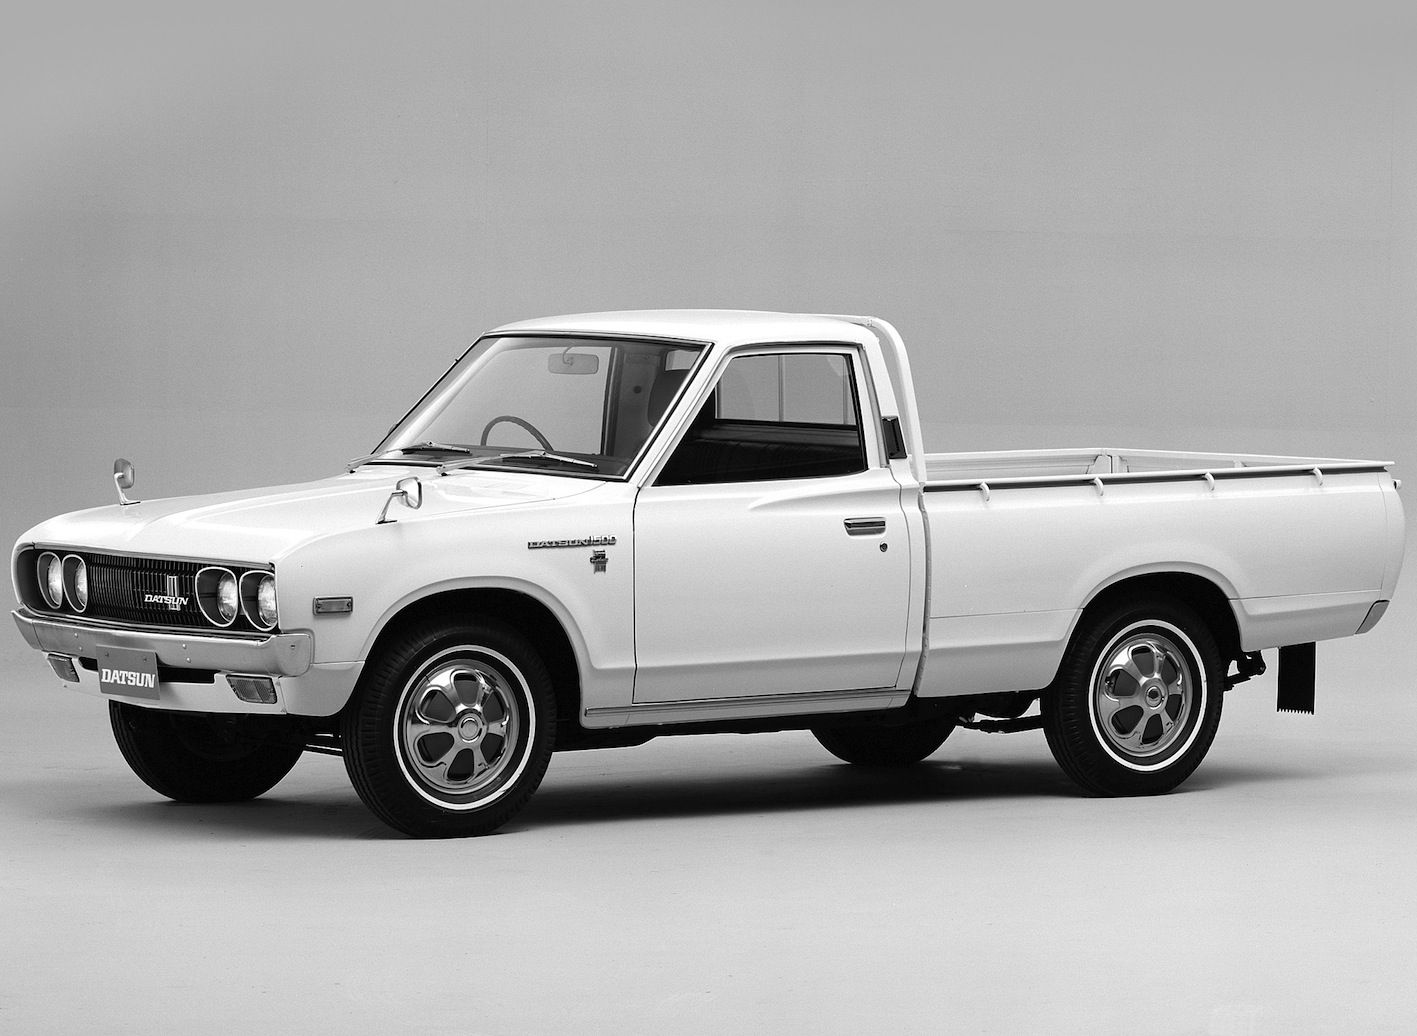 76 datsun pickups for sale the datsun 620 is one of the most beautiful - Datsun 620 Pick Up